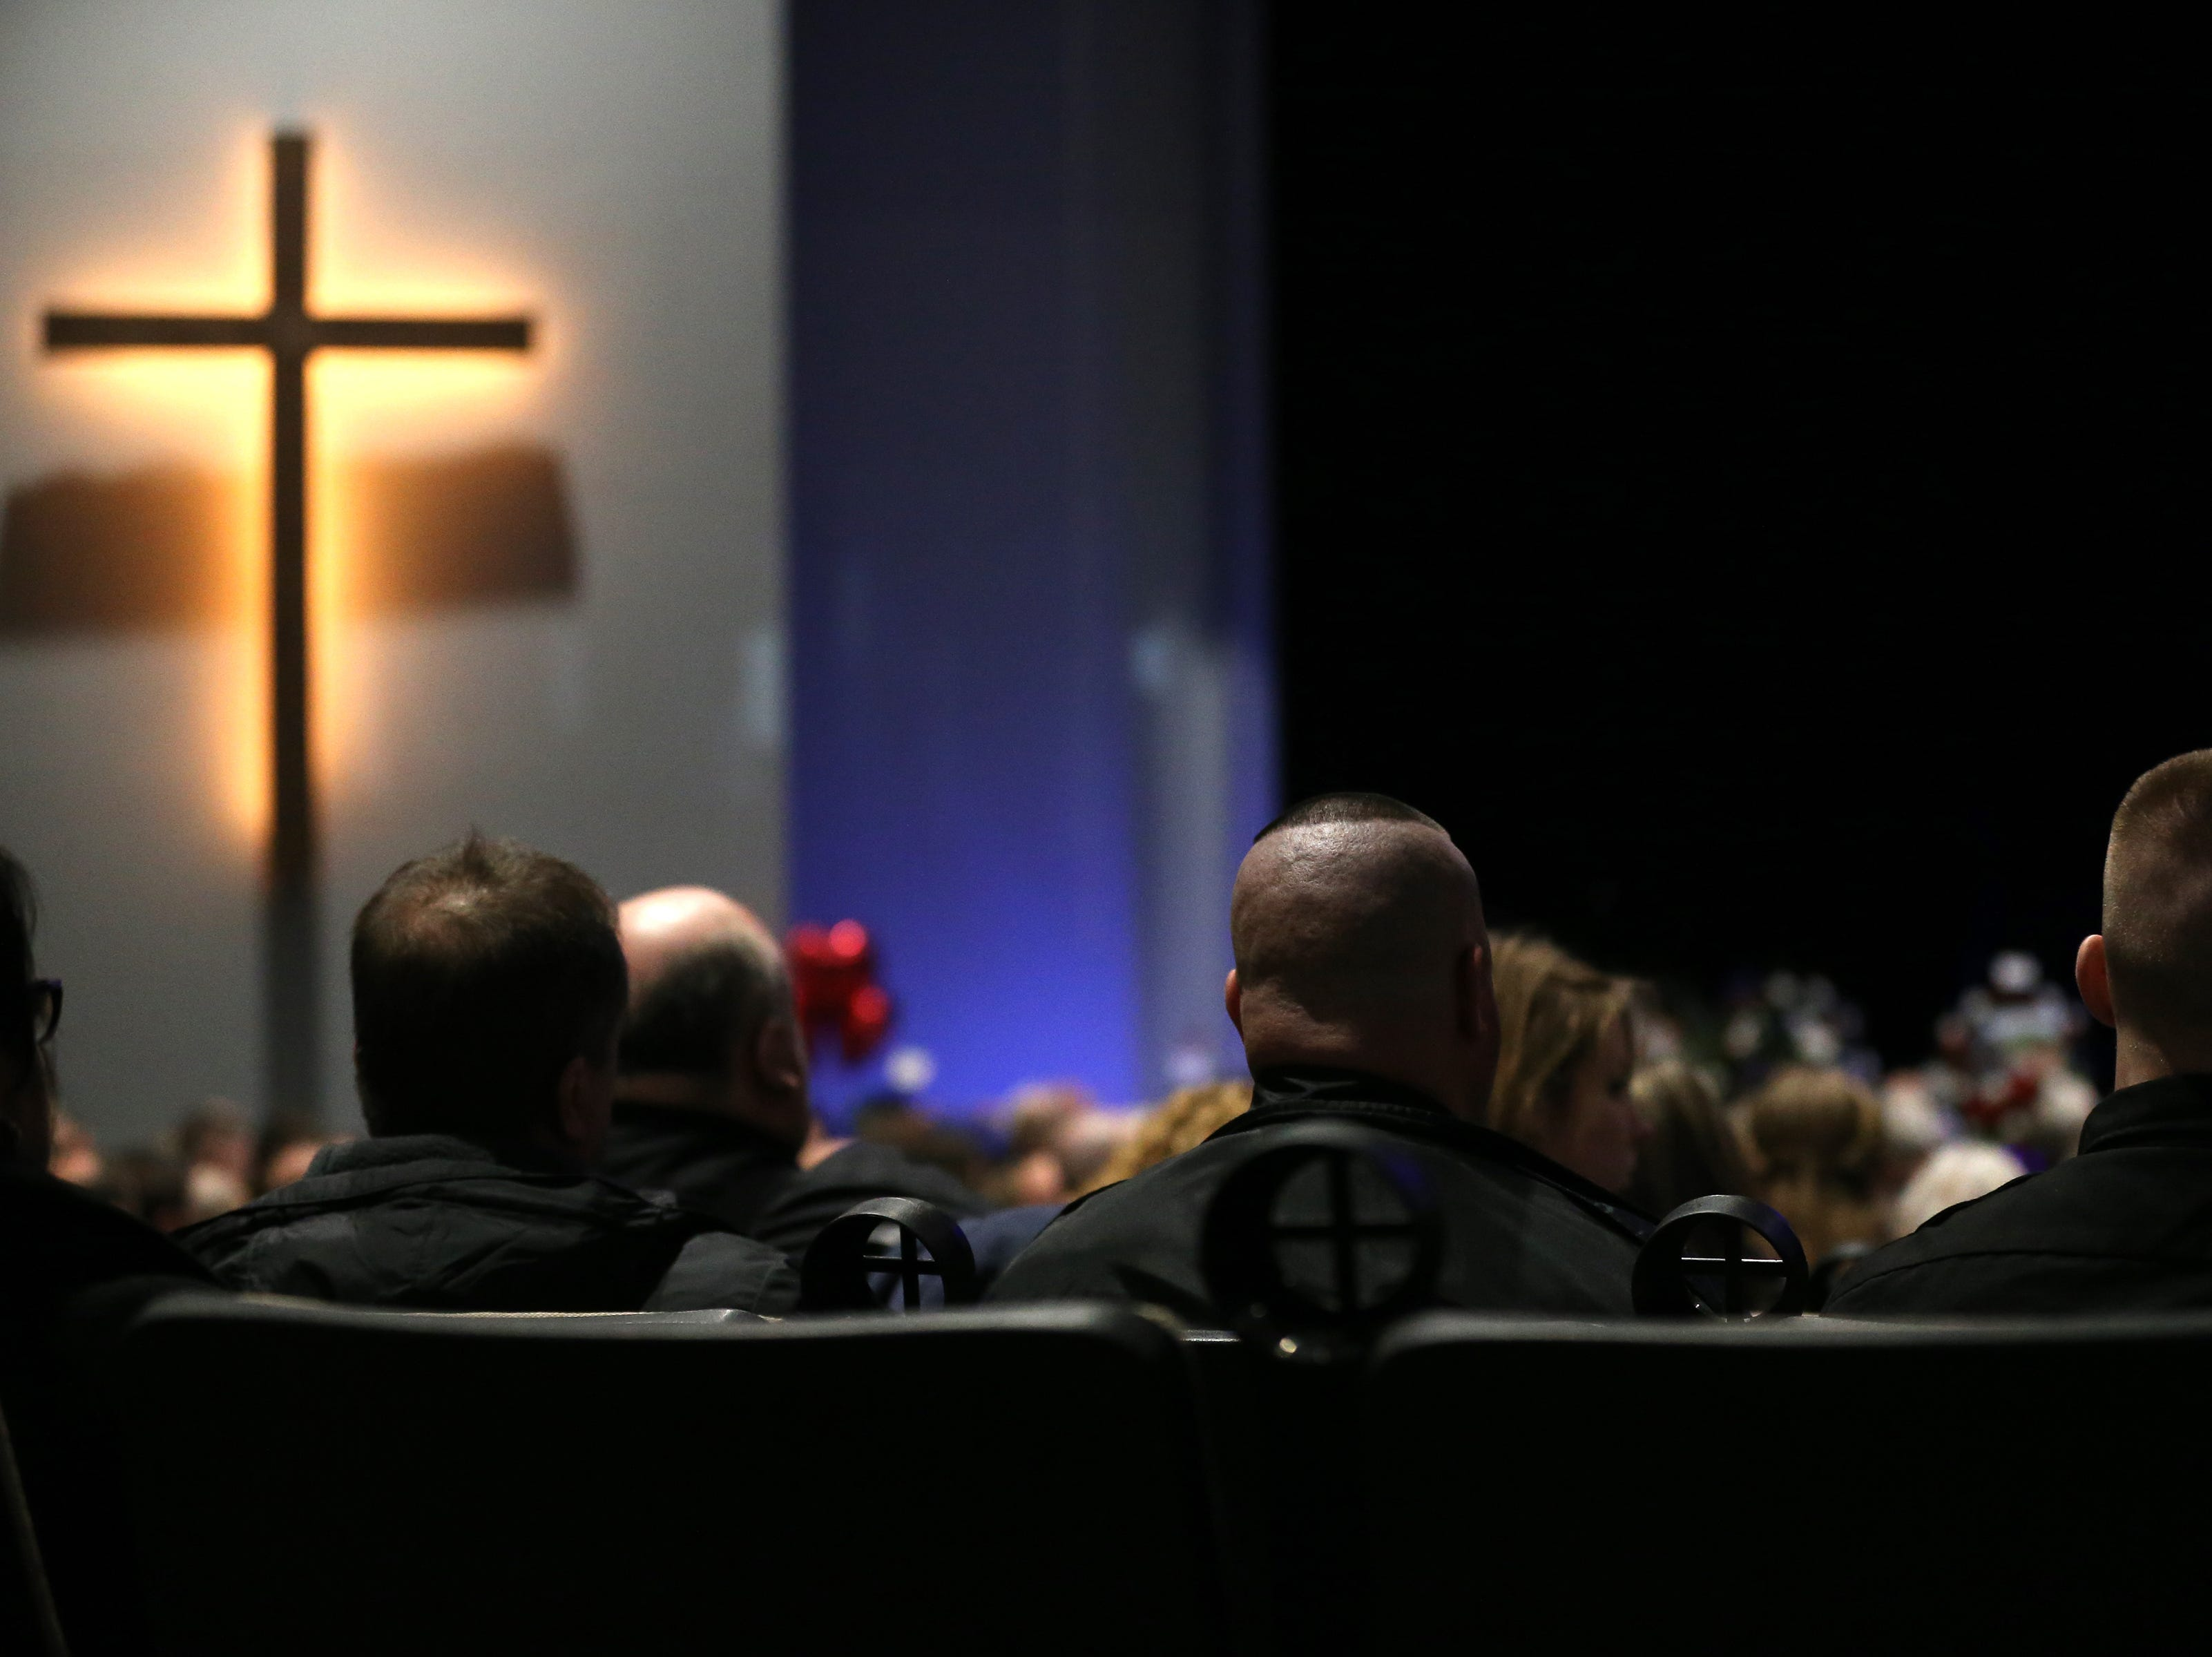 People pay their respects during funeral services for Clermont County Sheriff's Detective William Lee Brewer Jr., Friday, Feb. 8, 2019, at Mount Carmel Christian Church in Union Township, Ohio. Brewer, a 20-year veteran of the Clermont County Sheriff's Office, died in the line of duty. He was shot Feb. 2 during a standoff.